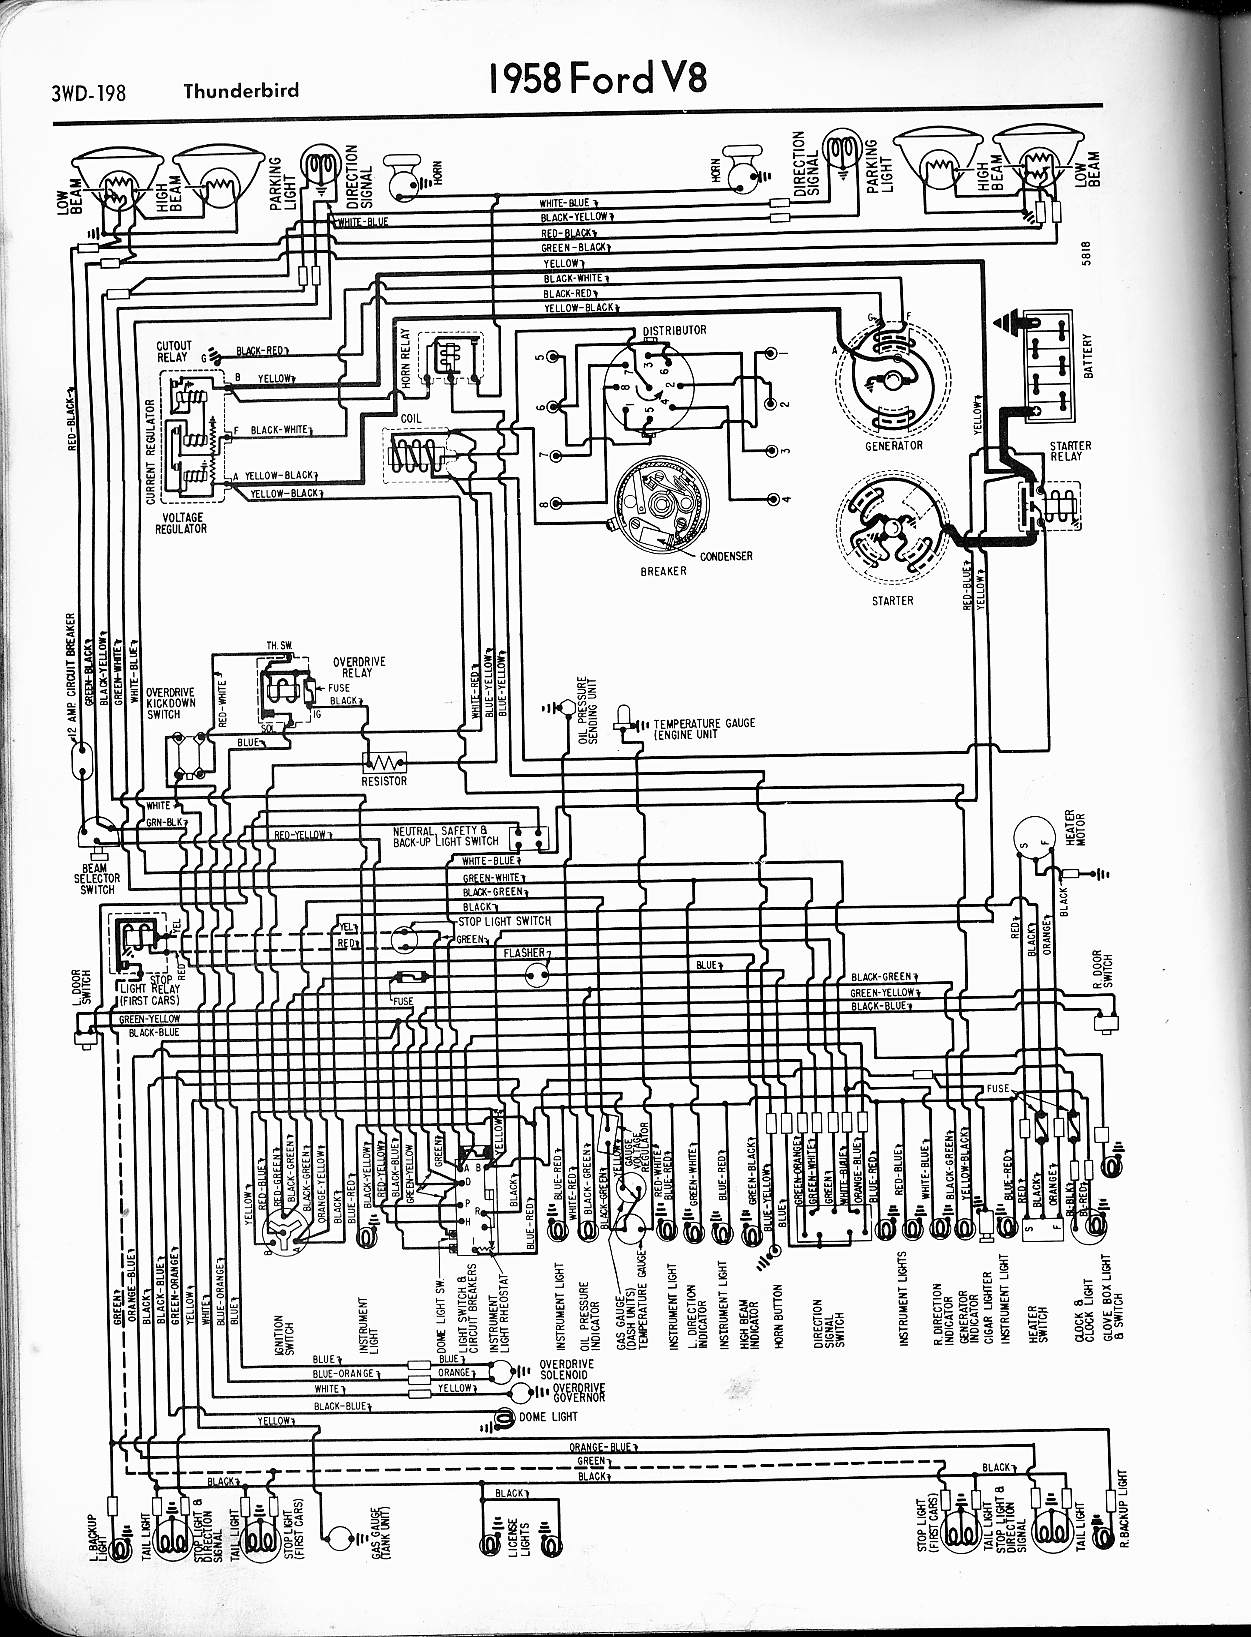 65 ford f100 wiring diagrams truck 1964 ford truck f100 s wiring diagram automotive | wiring ... 94 ford f53 flasher wiring diagrams truck